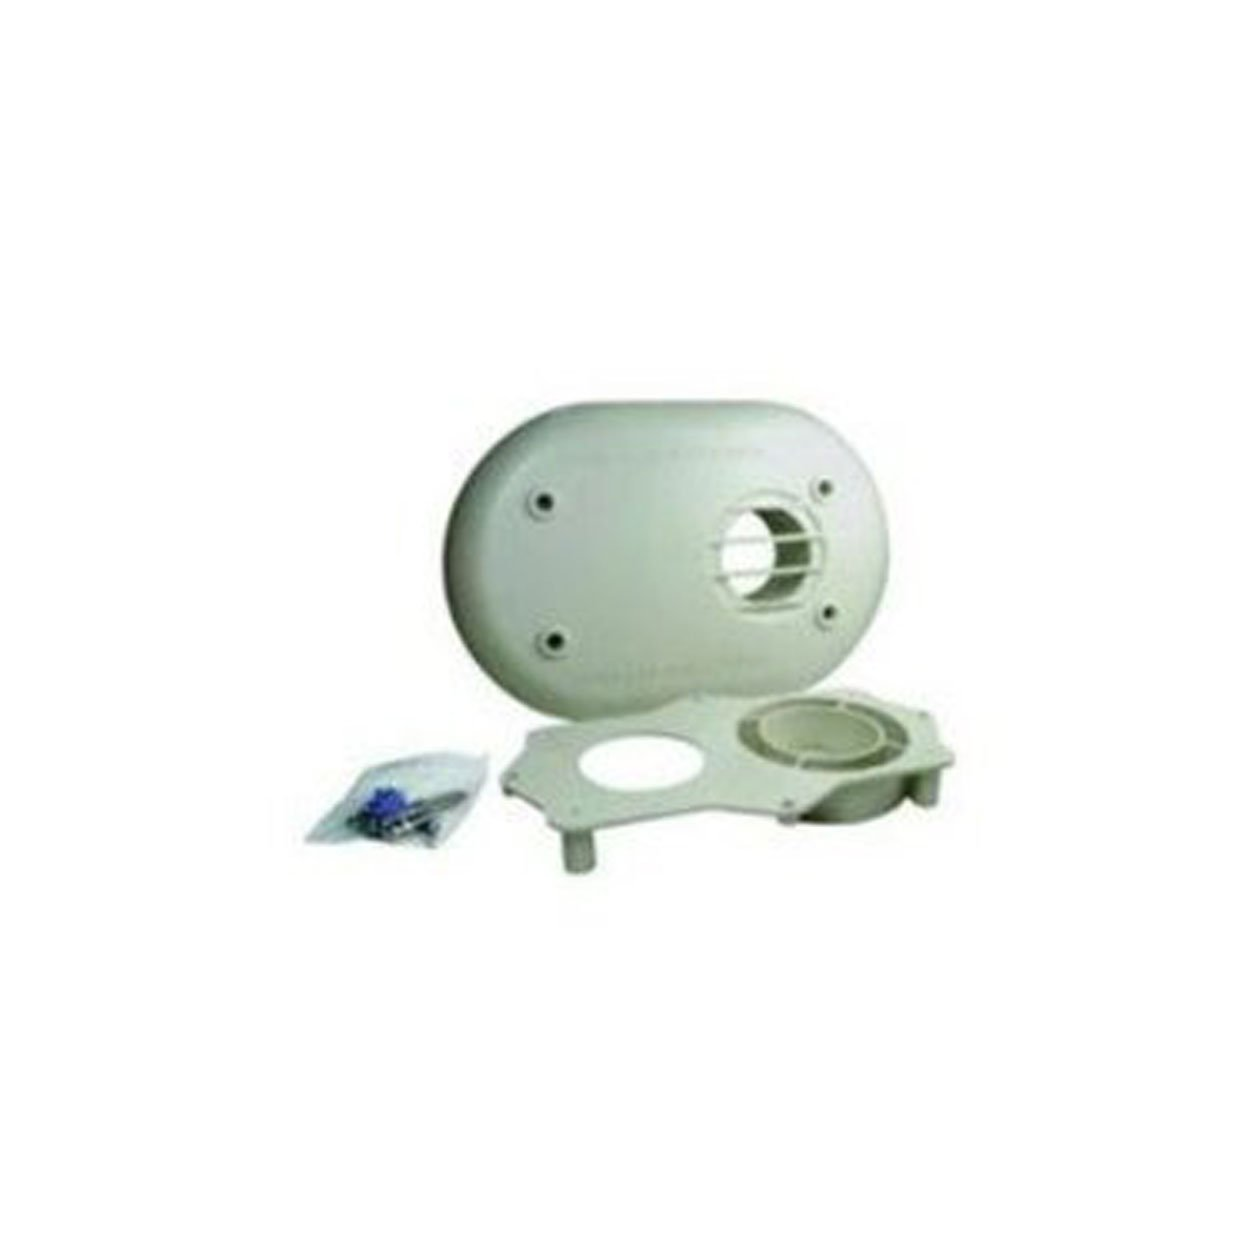 51Rr4NHUQyL._SL1258_ replacement parts amazon com  at creativeand.co